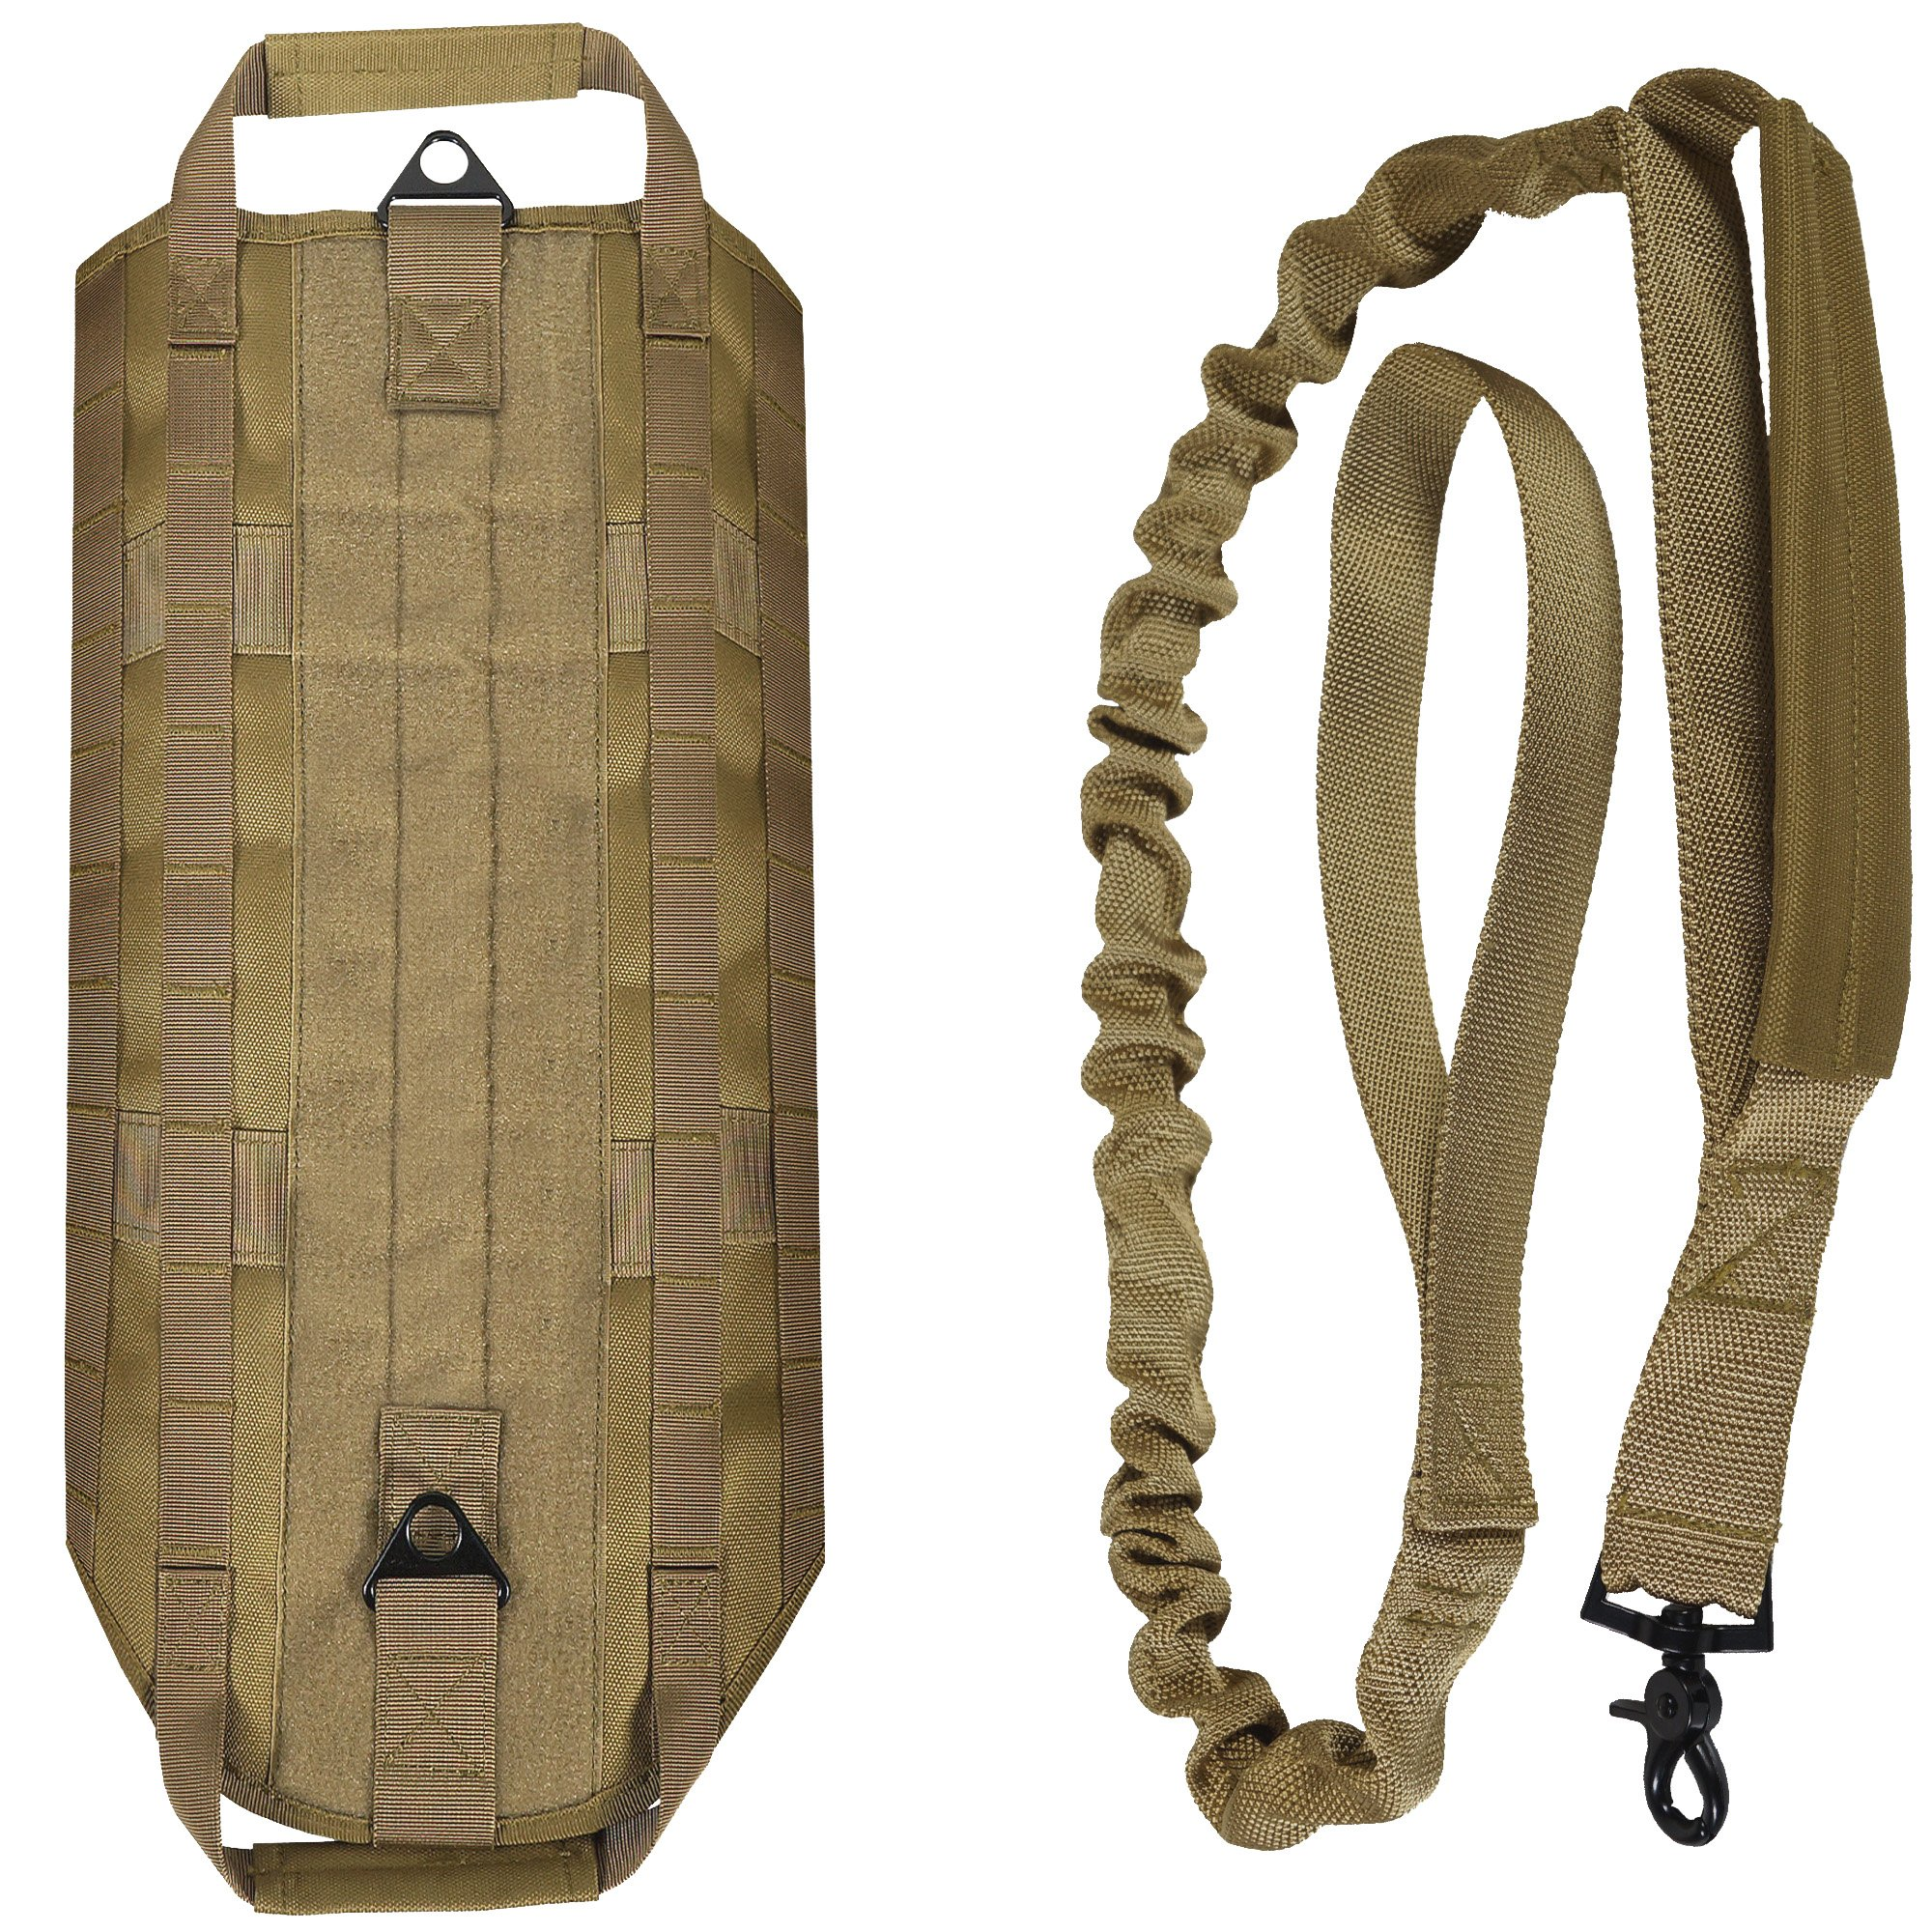 LIVABIT [ Tan Canine Service Dog Tactical Molle Vest Harness + Matching Heavy Duty Bungee Leash Strap Small [ Also for Cats & Puppies ] by LIVABIT